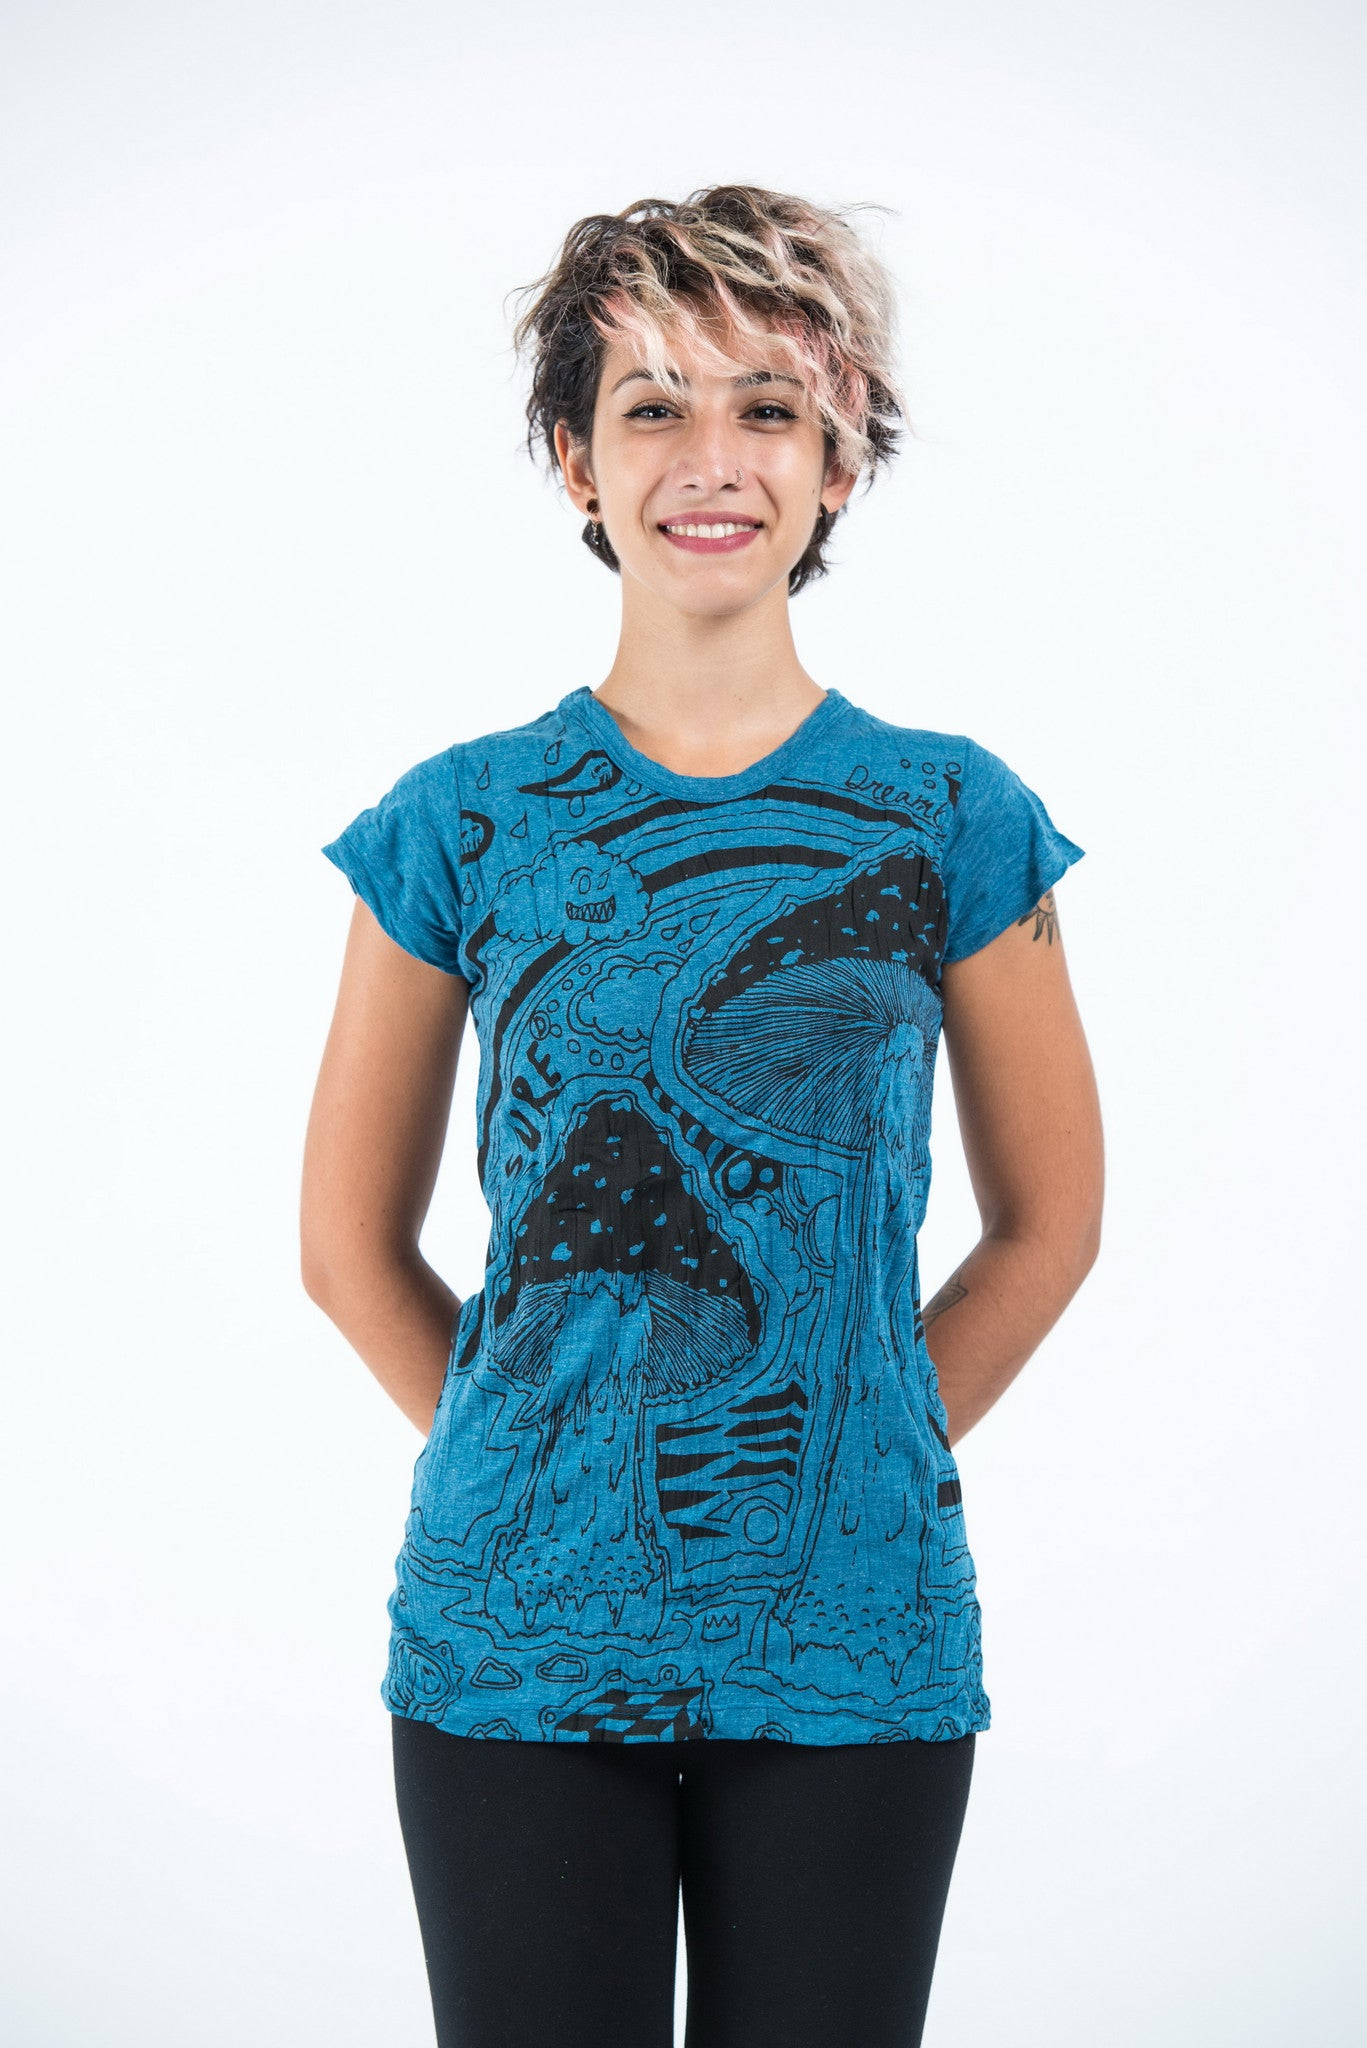 Sure design t shirts and clothing - Sure Design T Shirts And Clothing 20